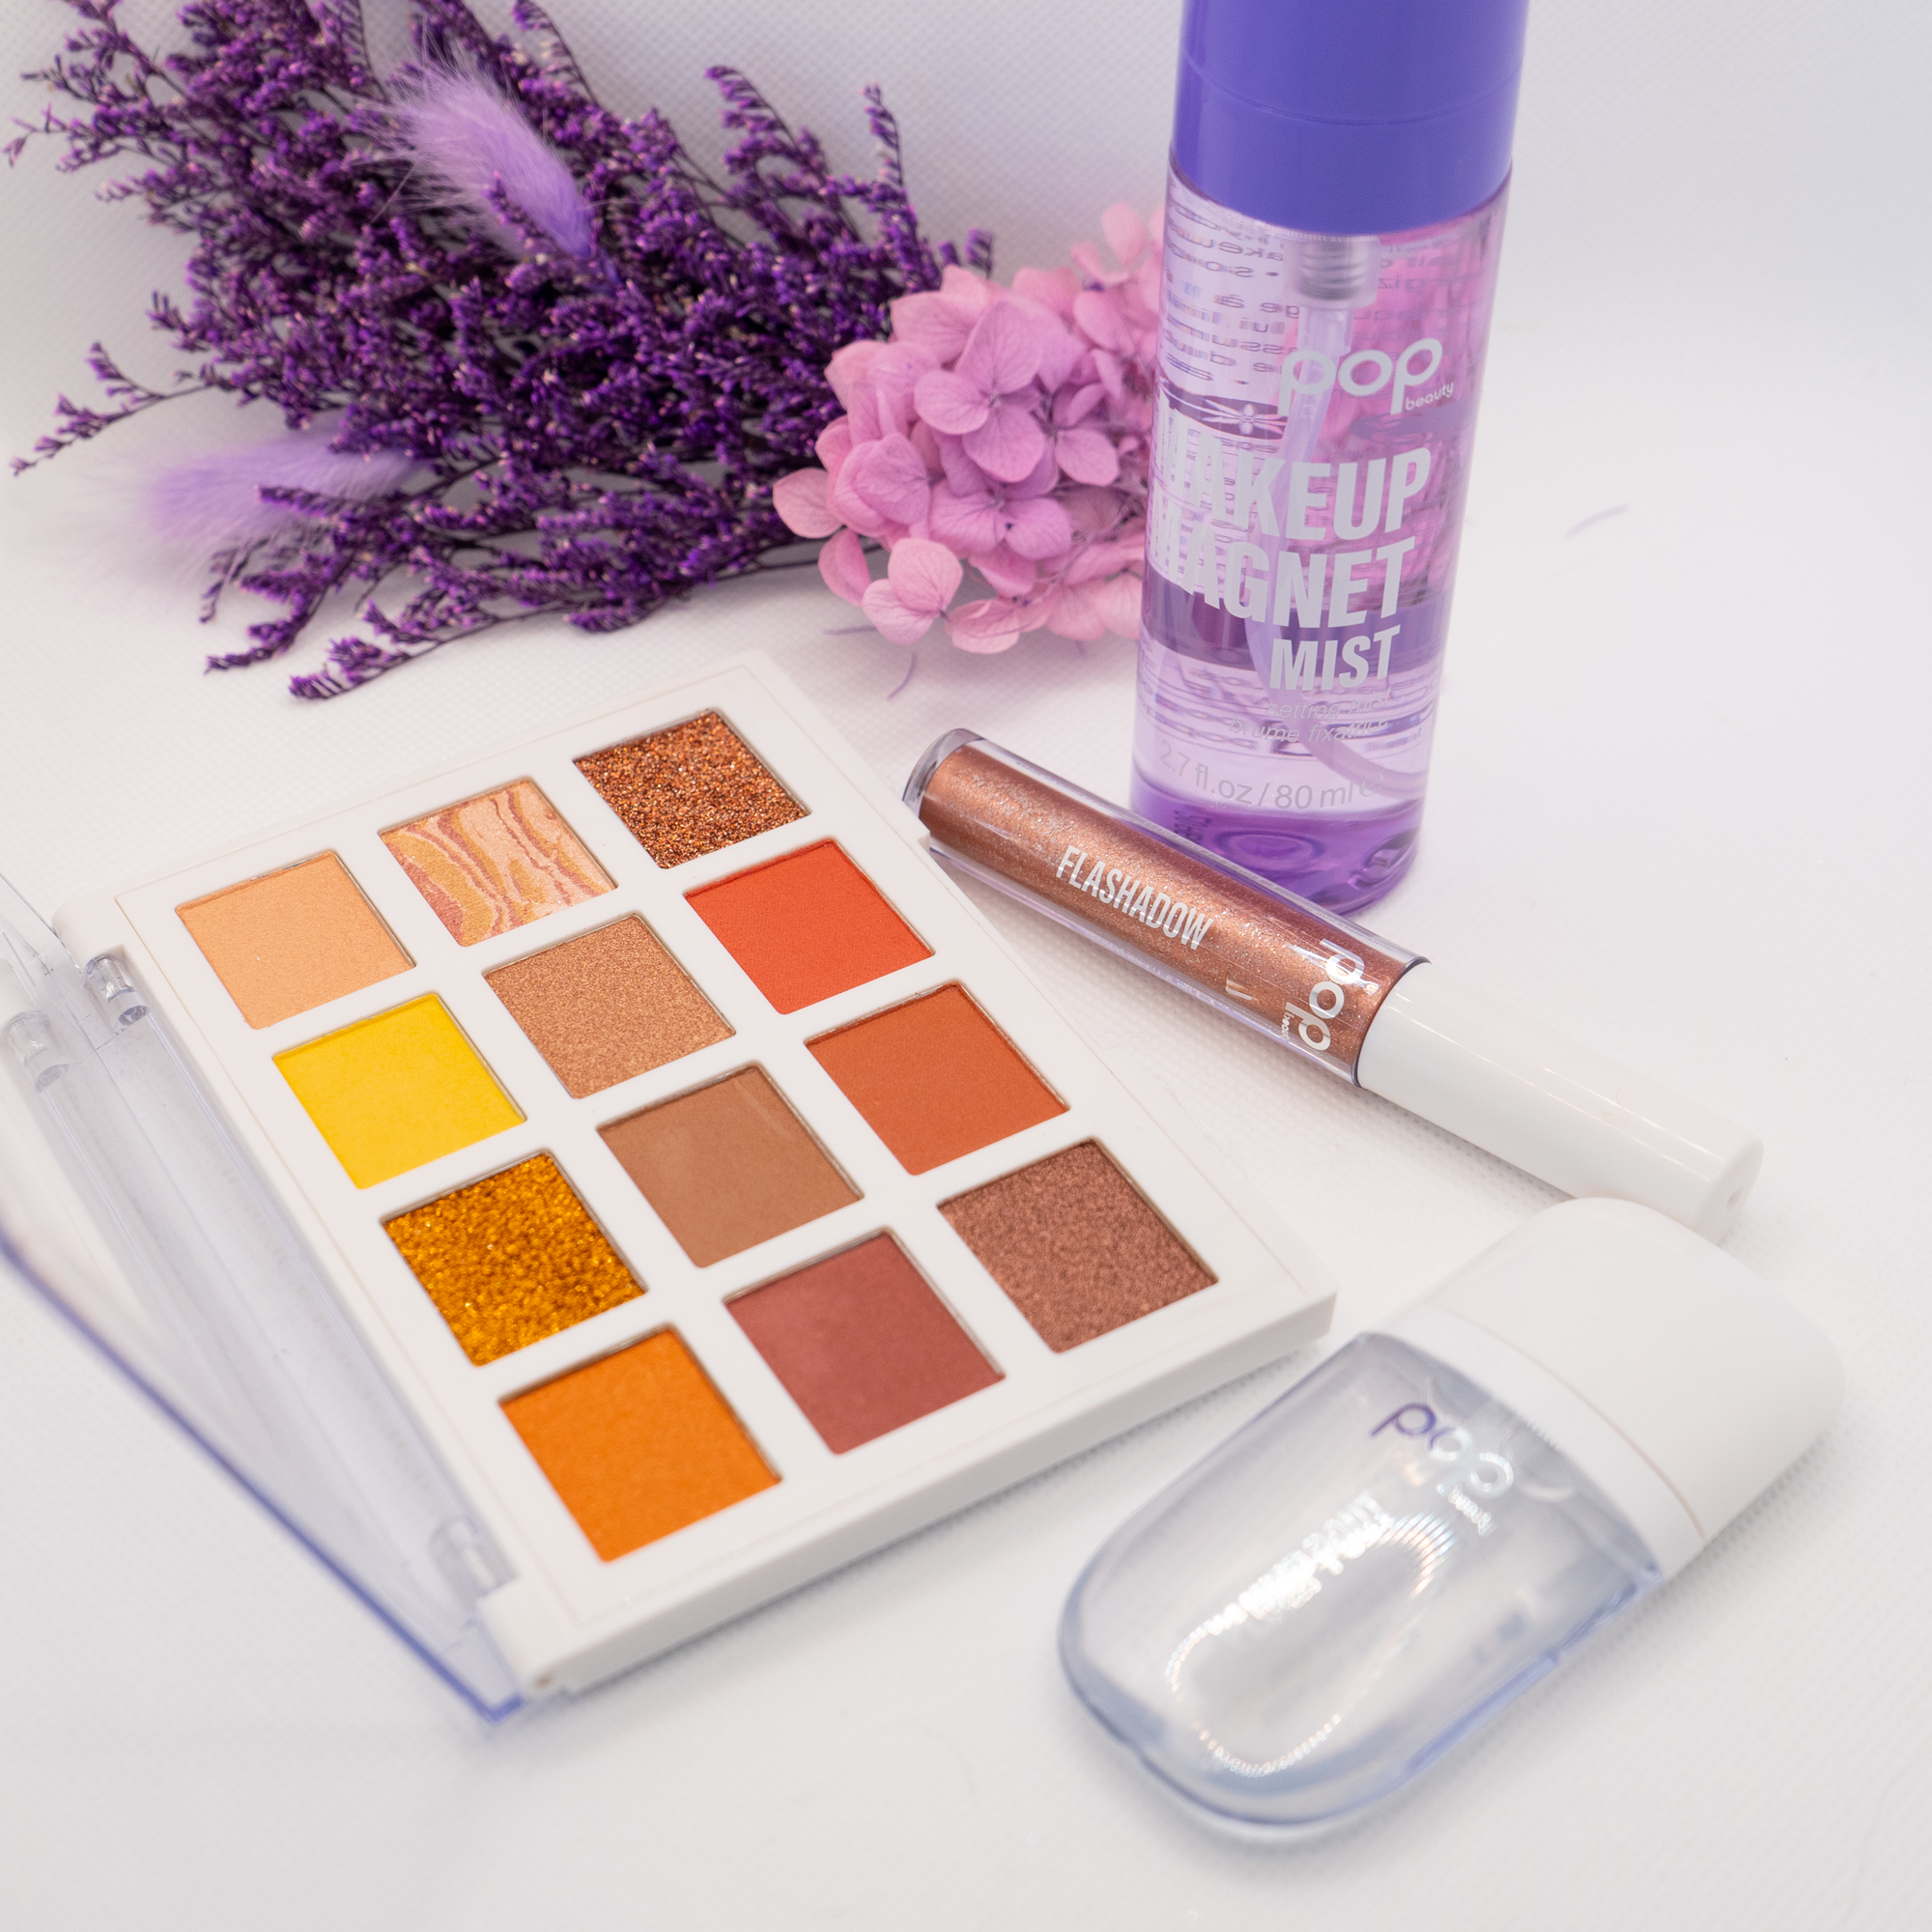 pop beauty eyeshadow palette, liquid shadow, setting spray and clear plumping gloss